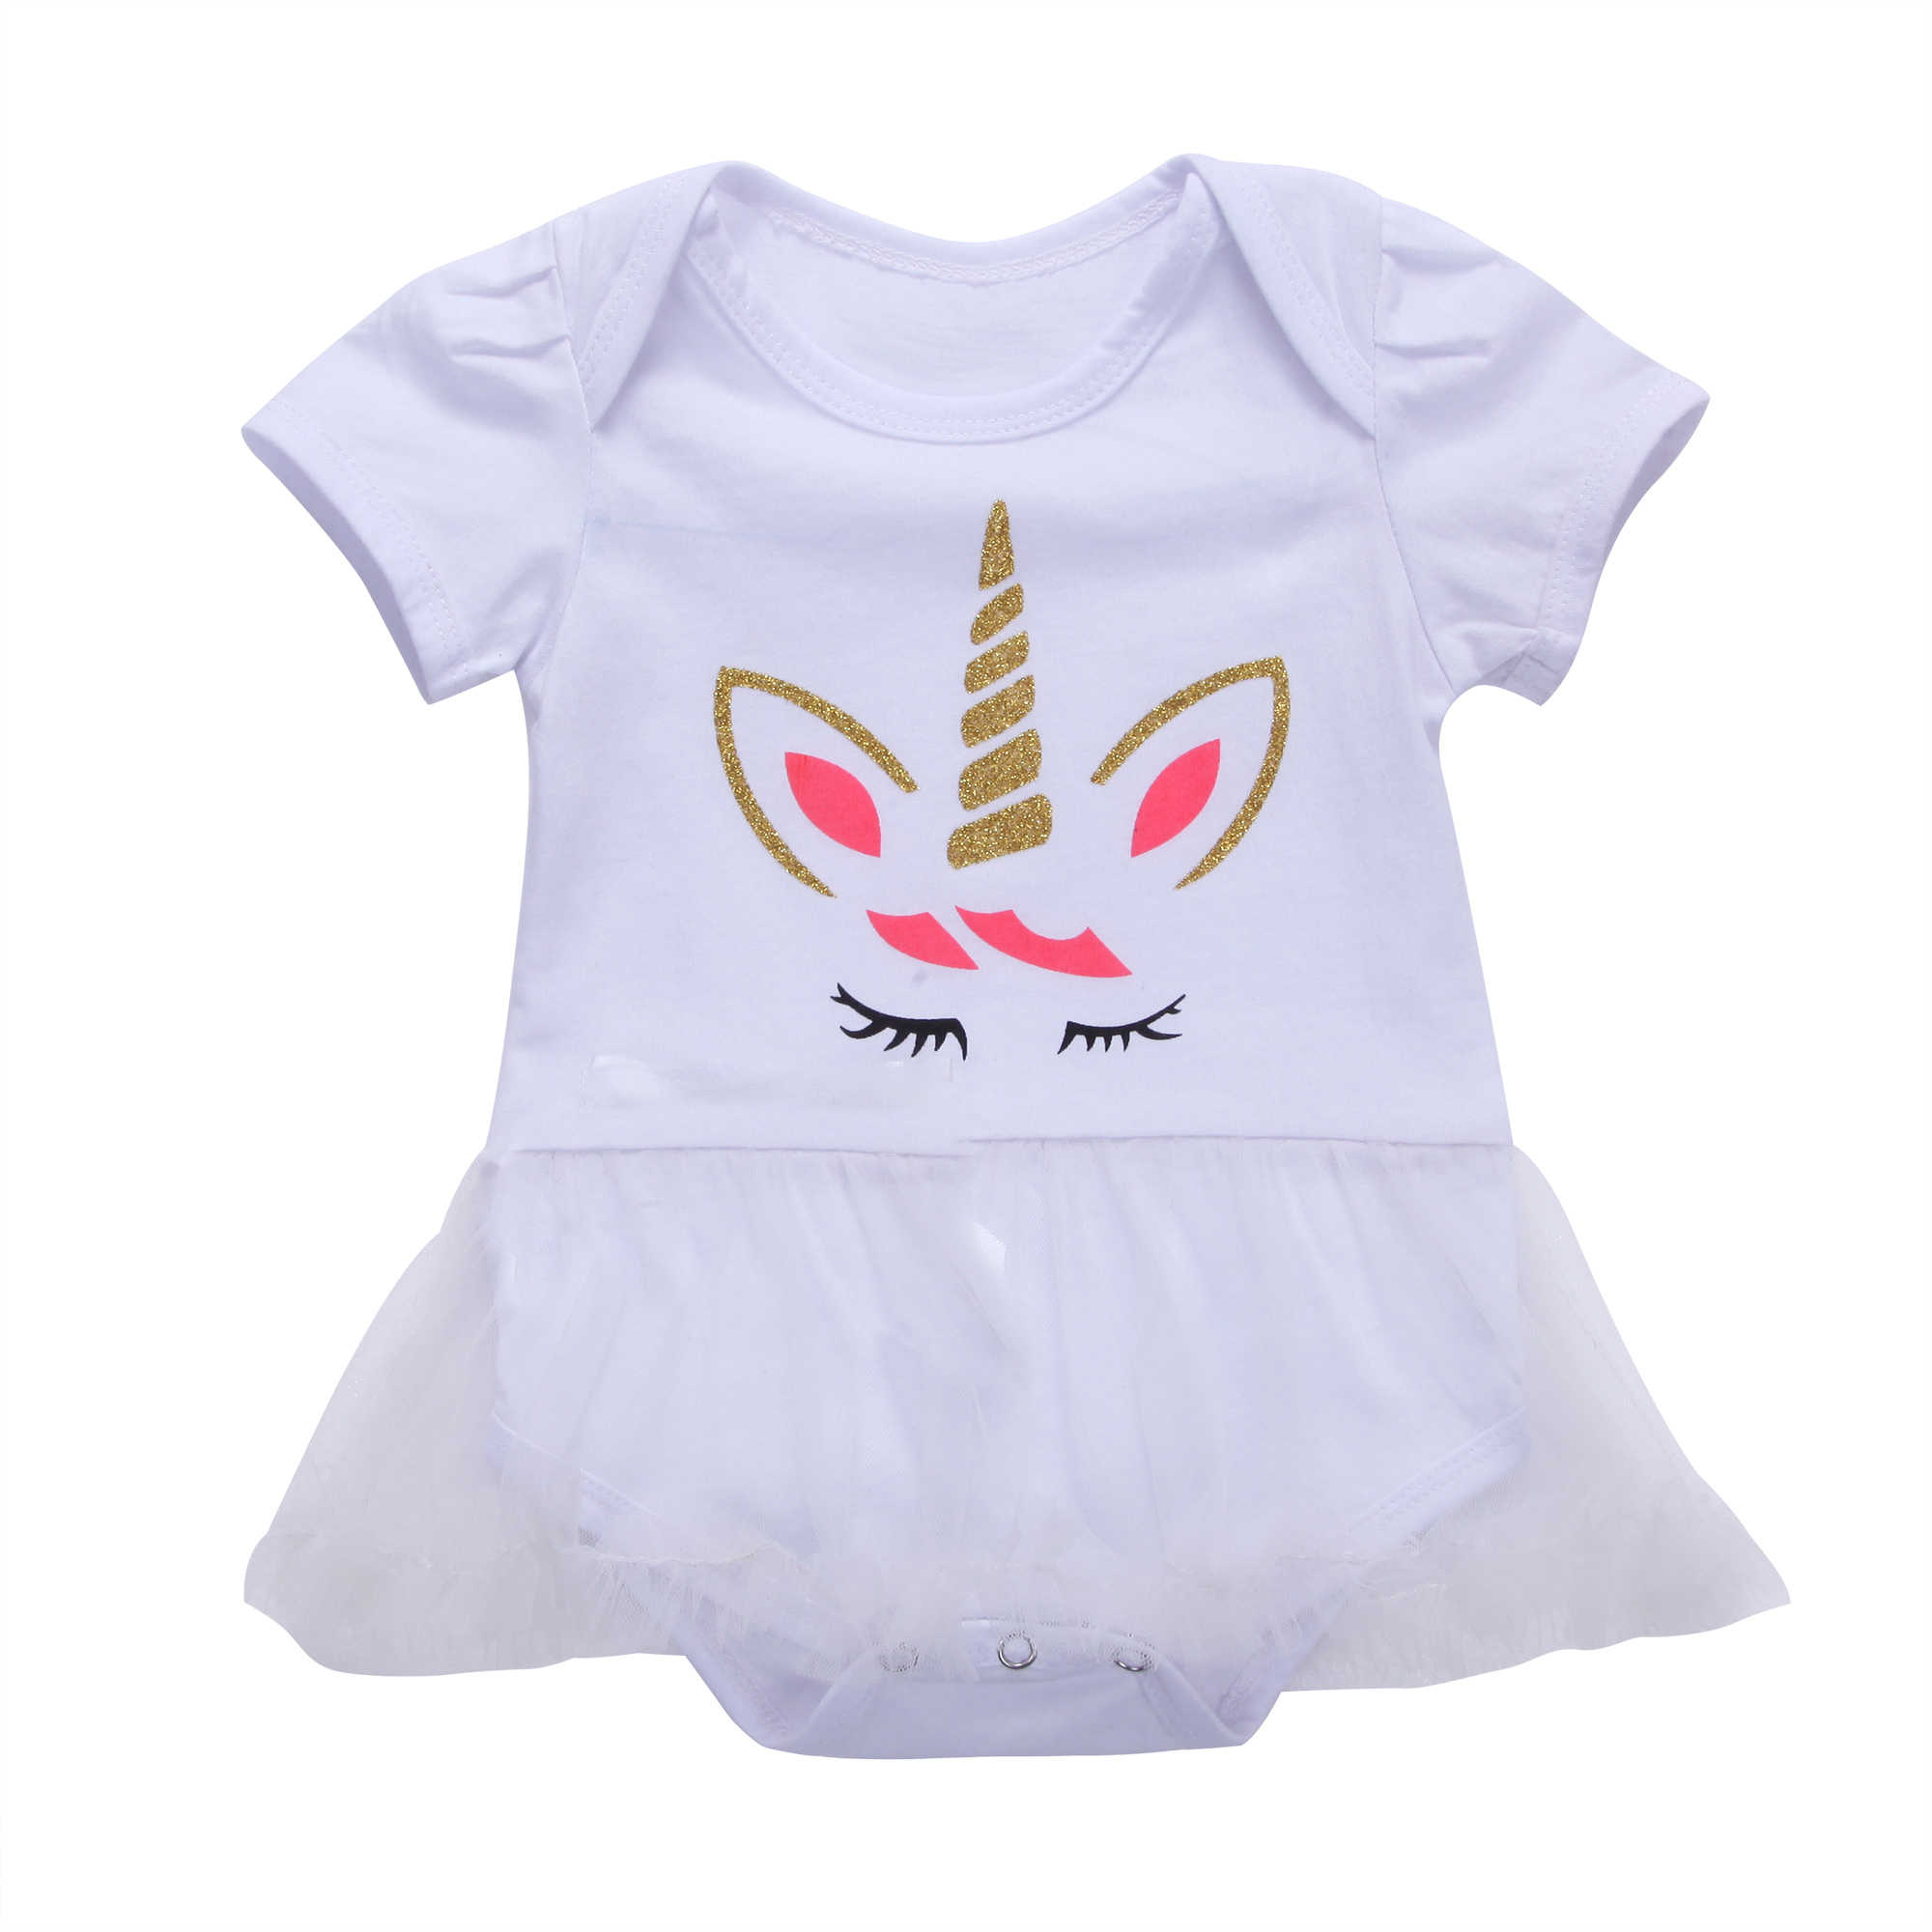 61f0f4b467c4 Detail Feedback Questions about 2018 Infant Toddler Baby Girl Short ...